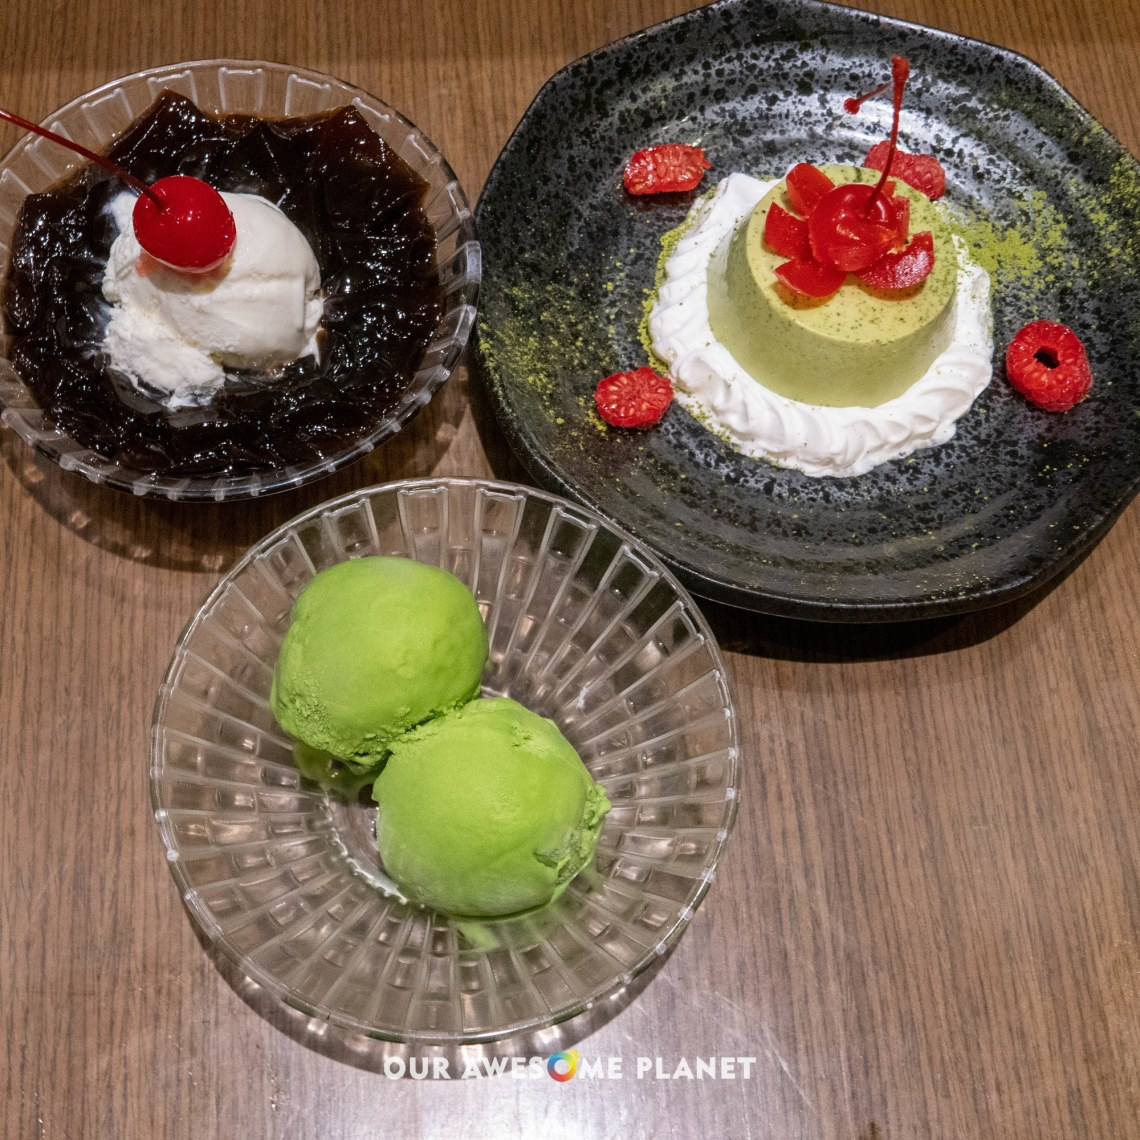 Coffee Gelatin, Matcha Panna Cotta, Matcha Ice Cream